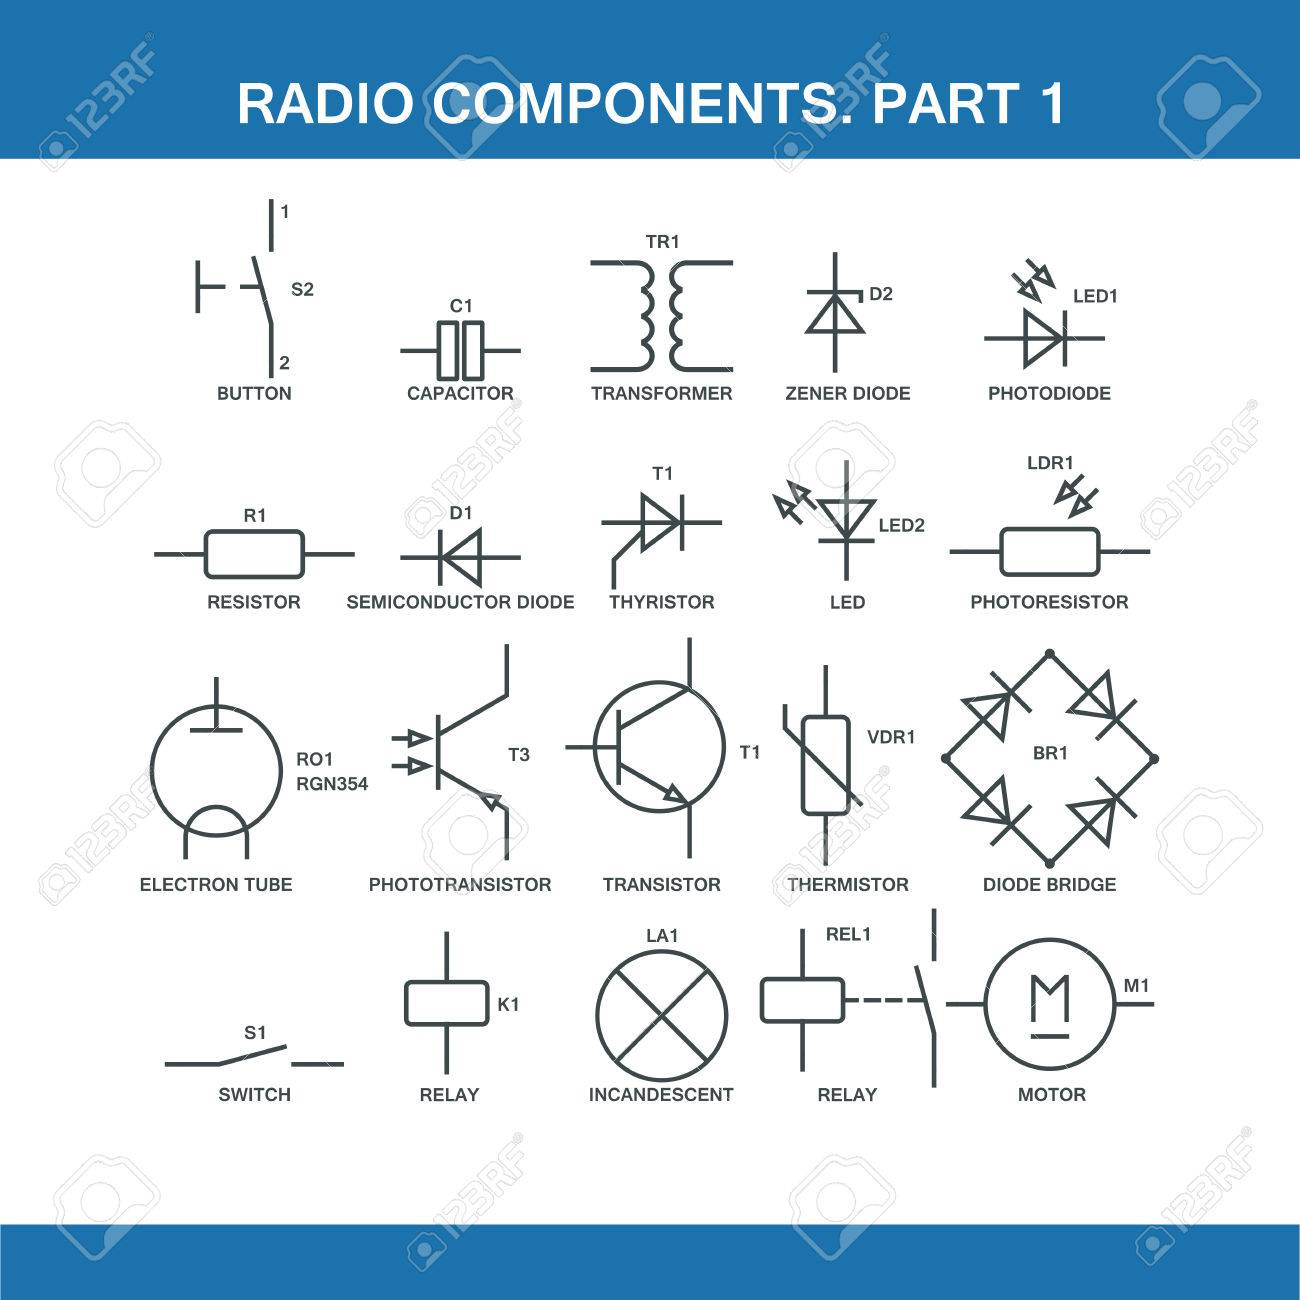 hight resolution of designation of components in the wiring diagram in vector format eps10 stock vector 52237902